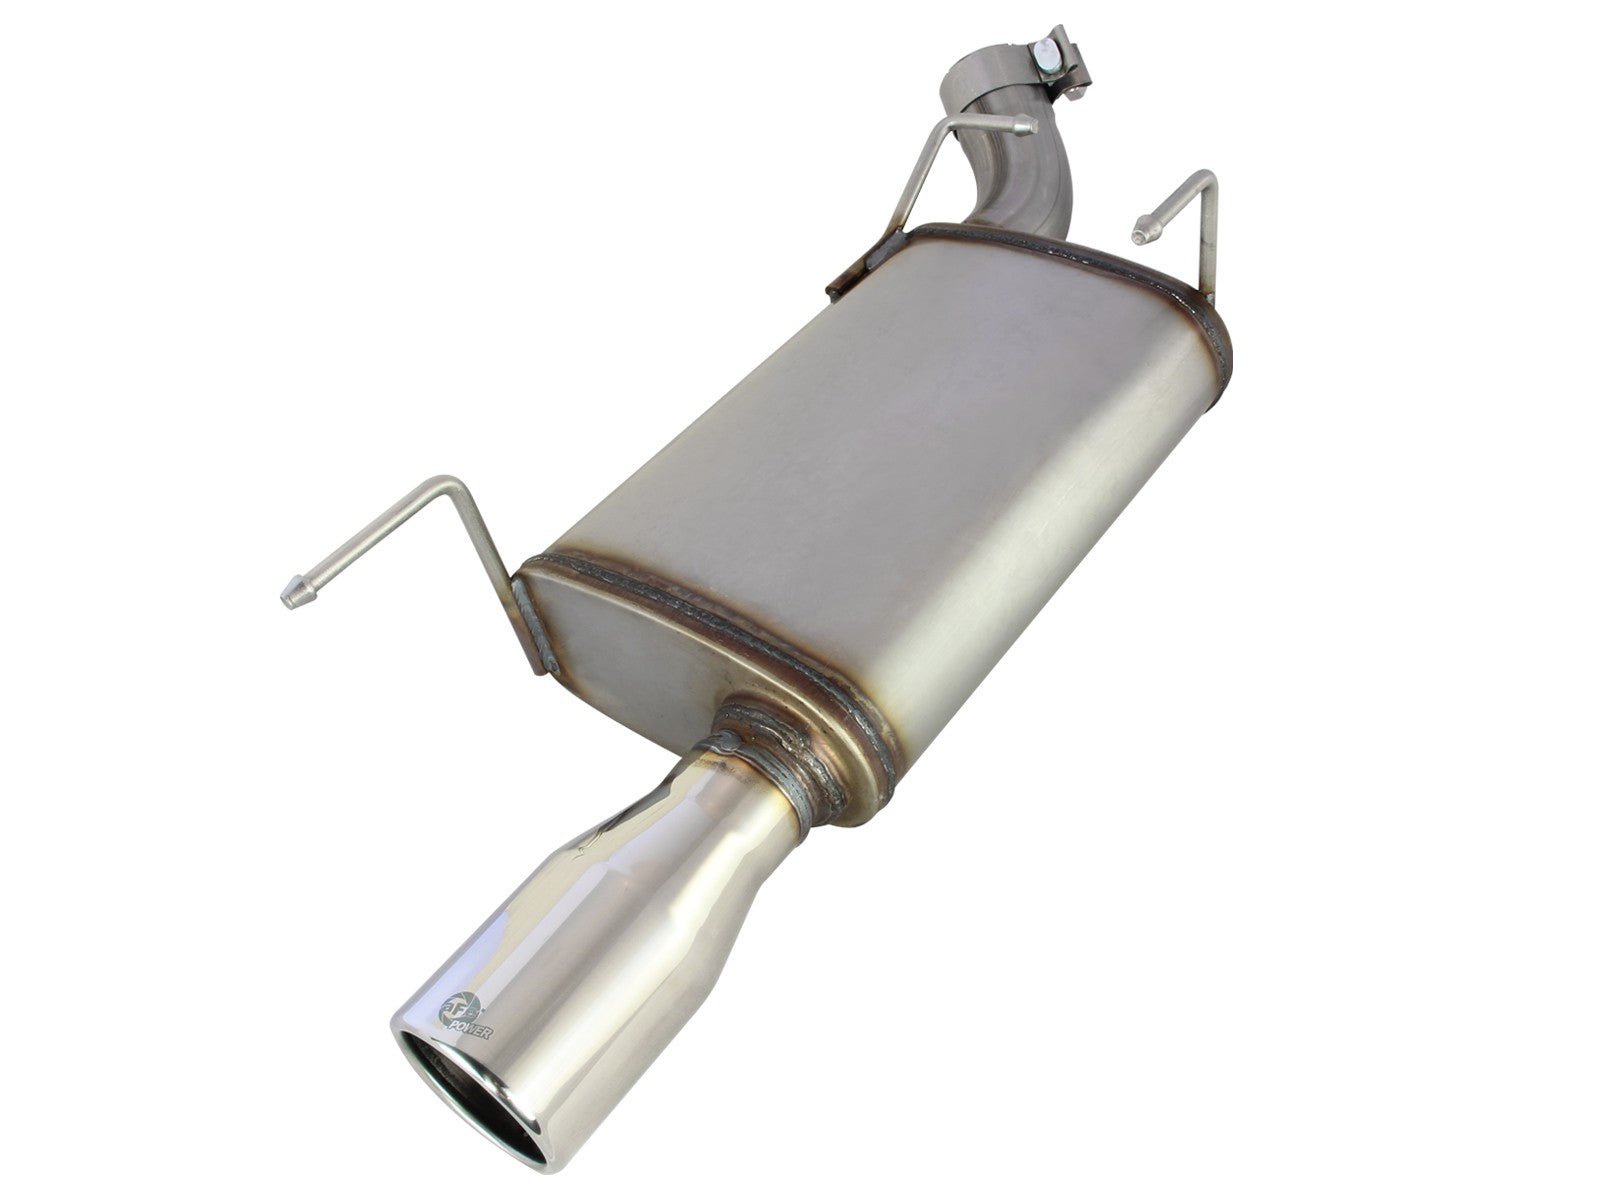 "aFe MACH Force-XP 2-1/2"" 409 Stainless Steel Axle-Back Exhaust (2005-2009 V6)"